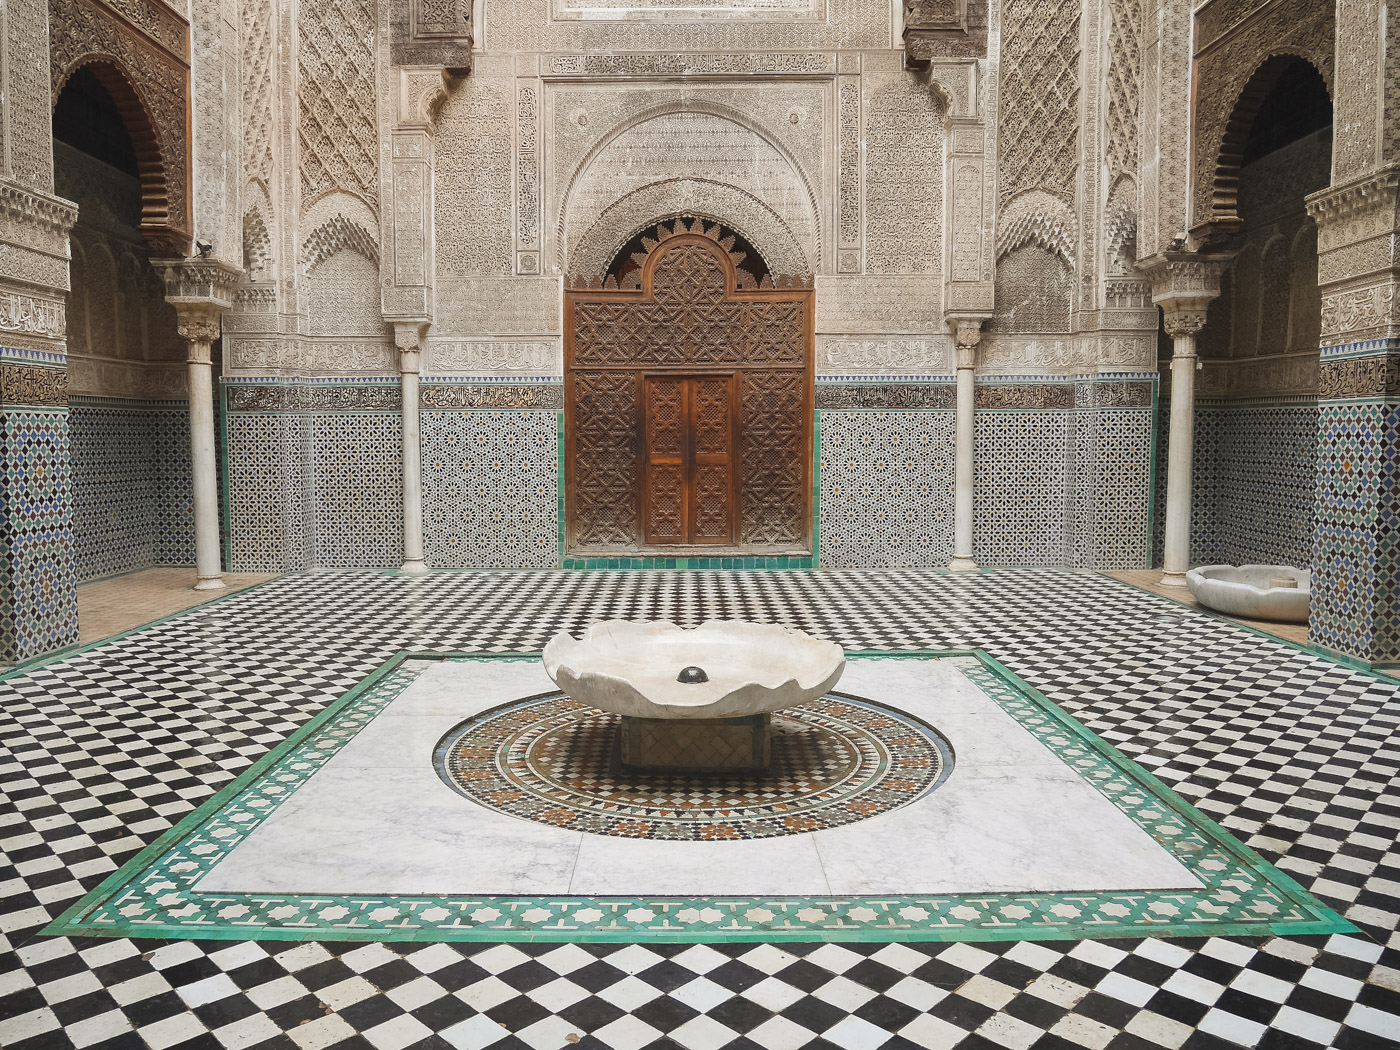 Wat te doen in Fez stedentrip tips